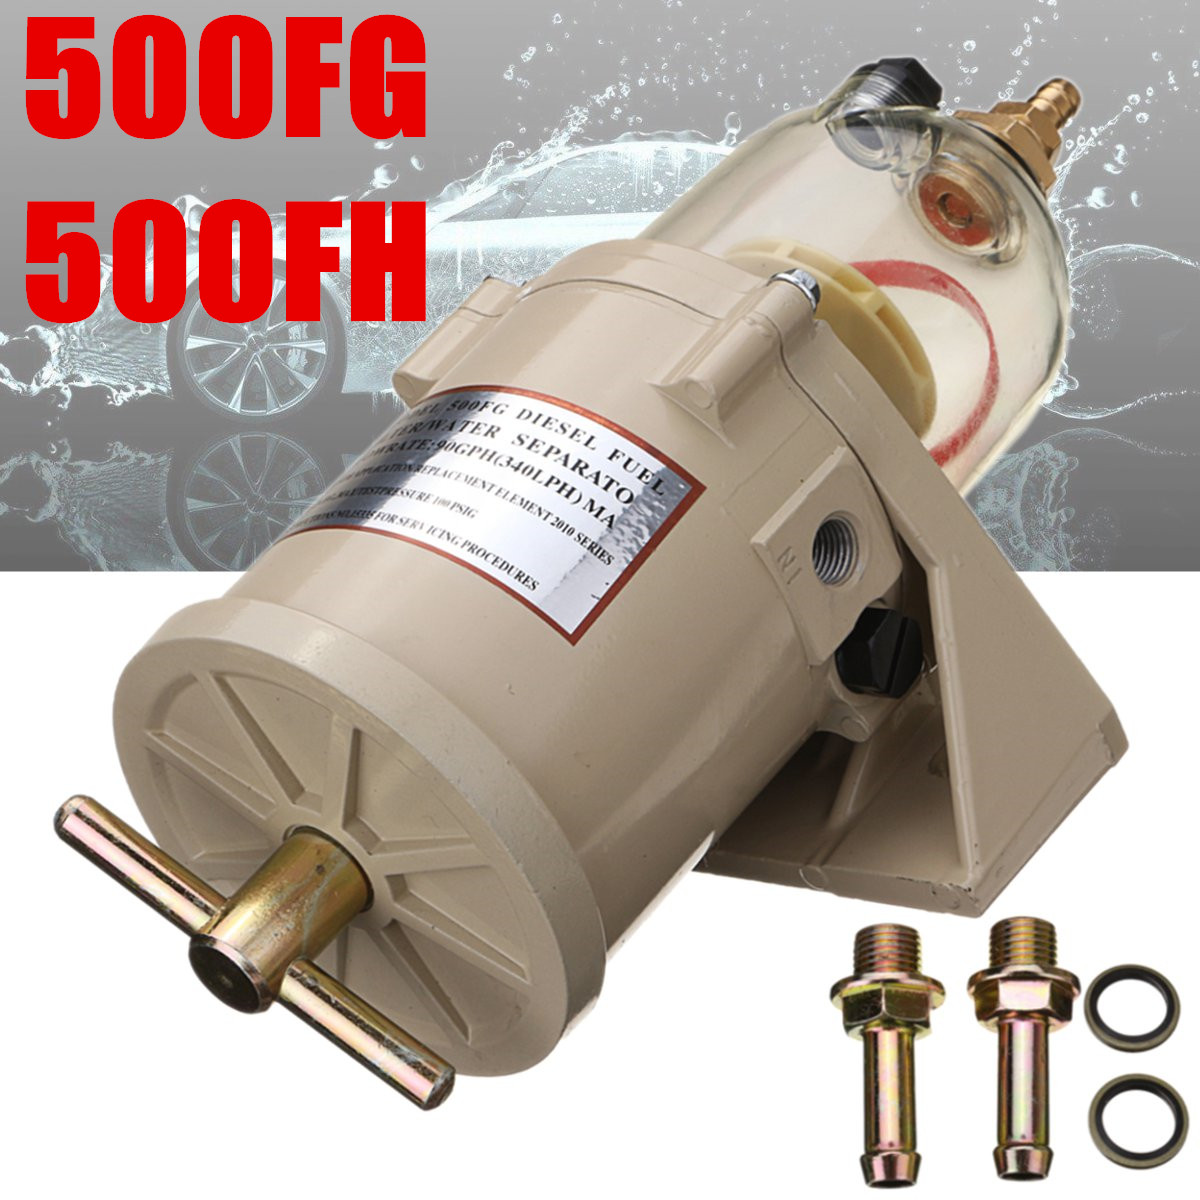 Free Shipping King Way 500fg Fh Diesel Marine Boat Fuel Filter Escalade Location New 500fh Water Separator Fit